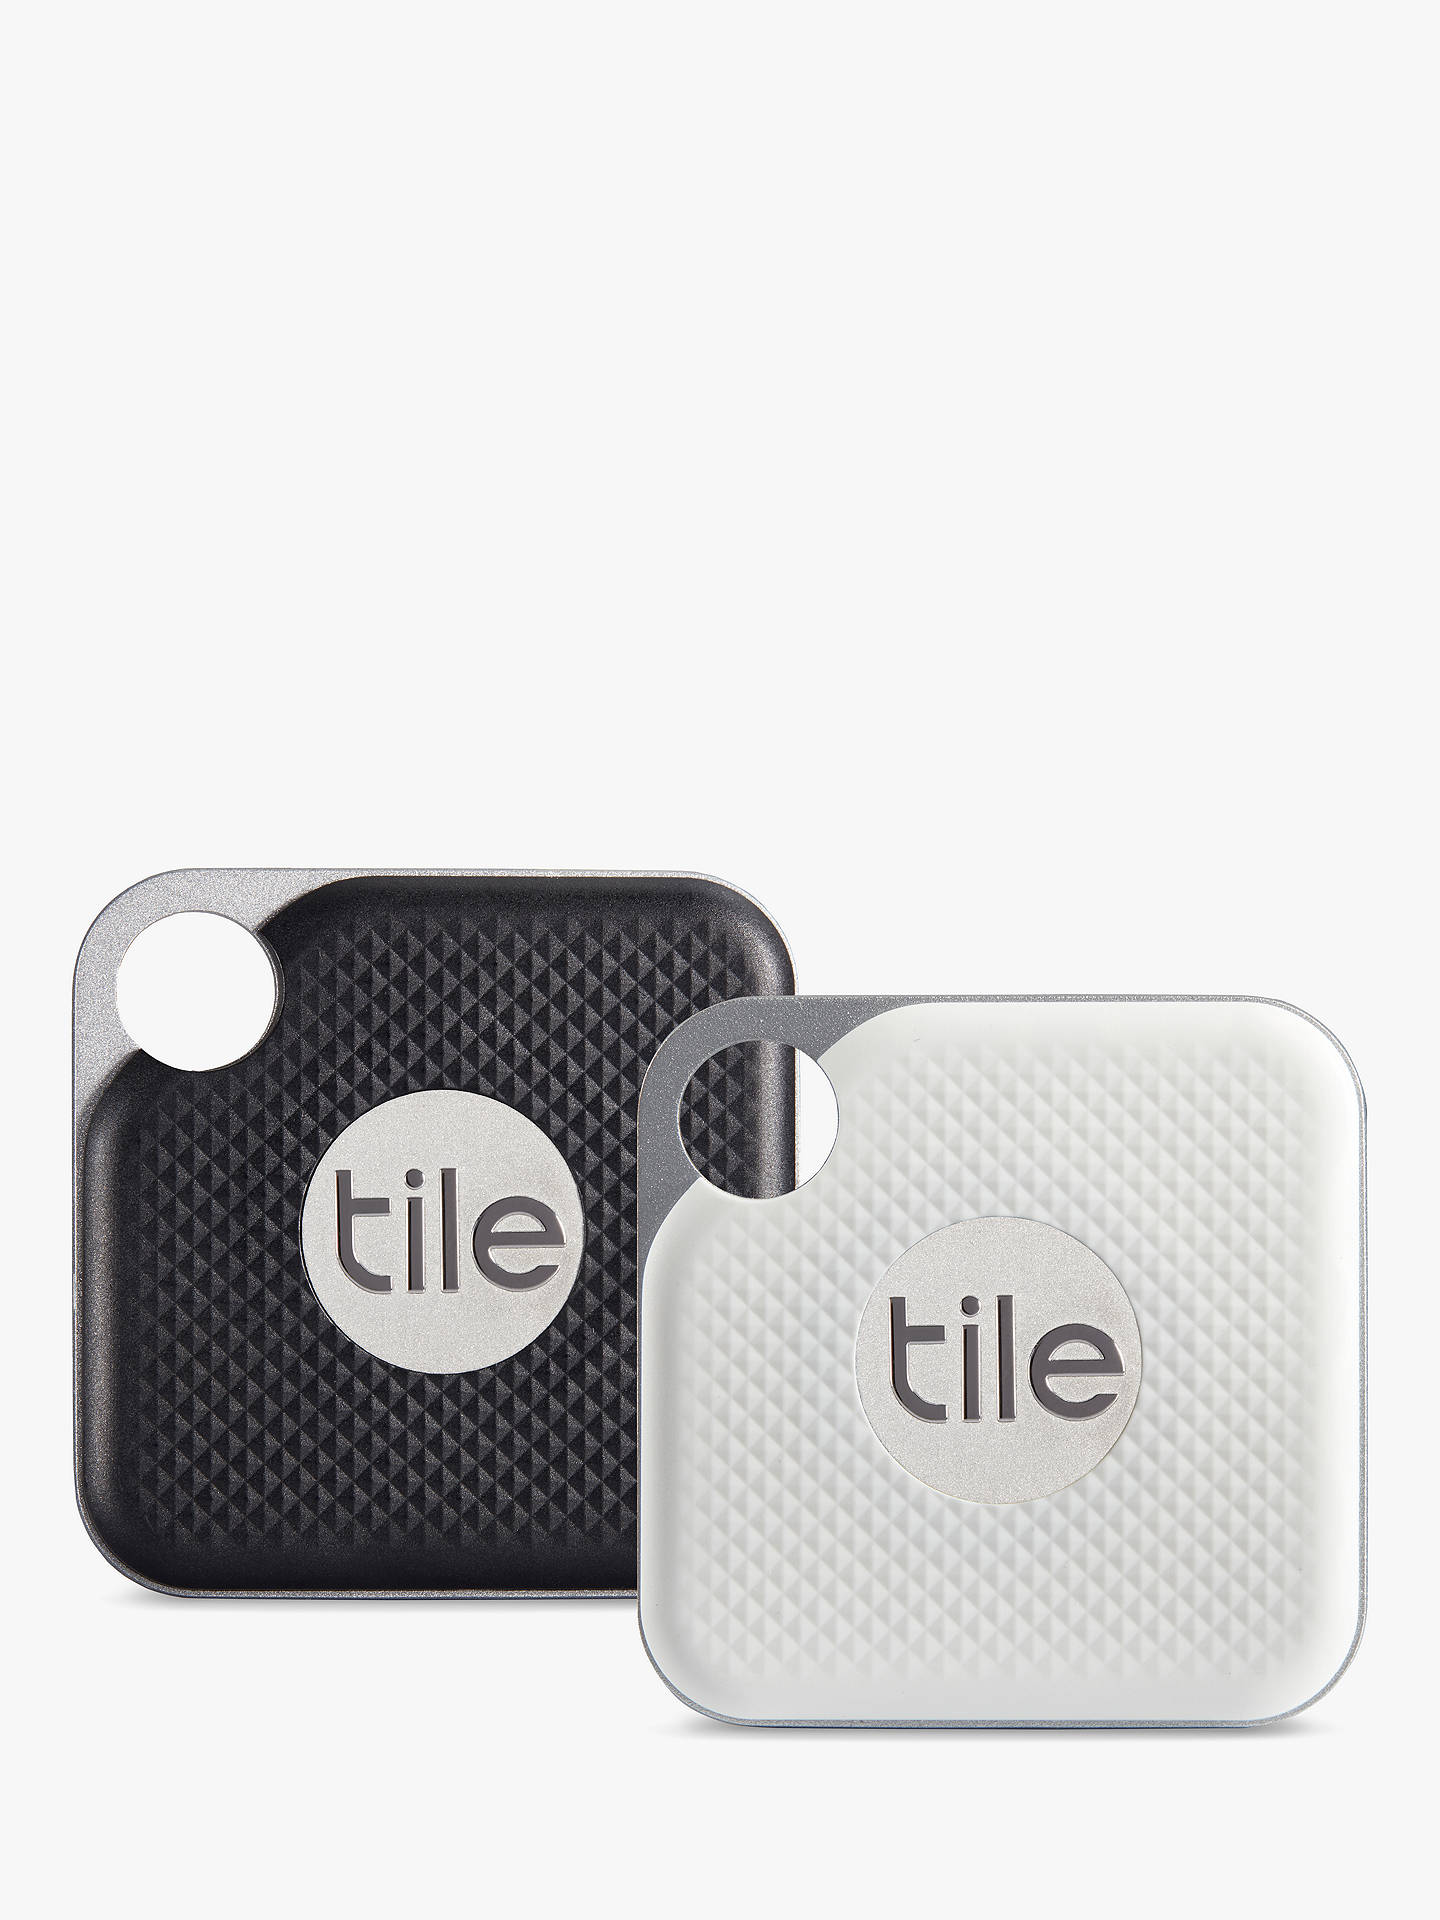 Tile Style Pro Series (2018), Bluetooth Phone, Keys, Item Finder, 2 Pack,  Black and White